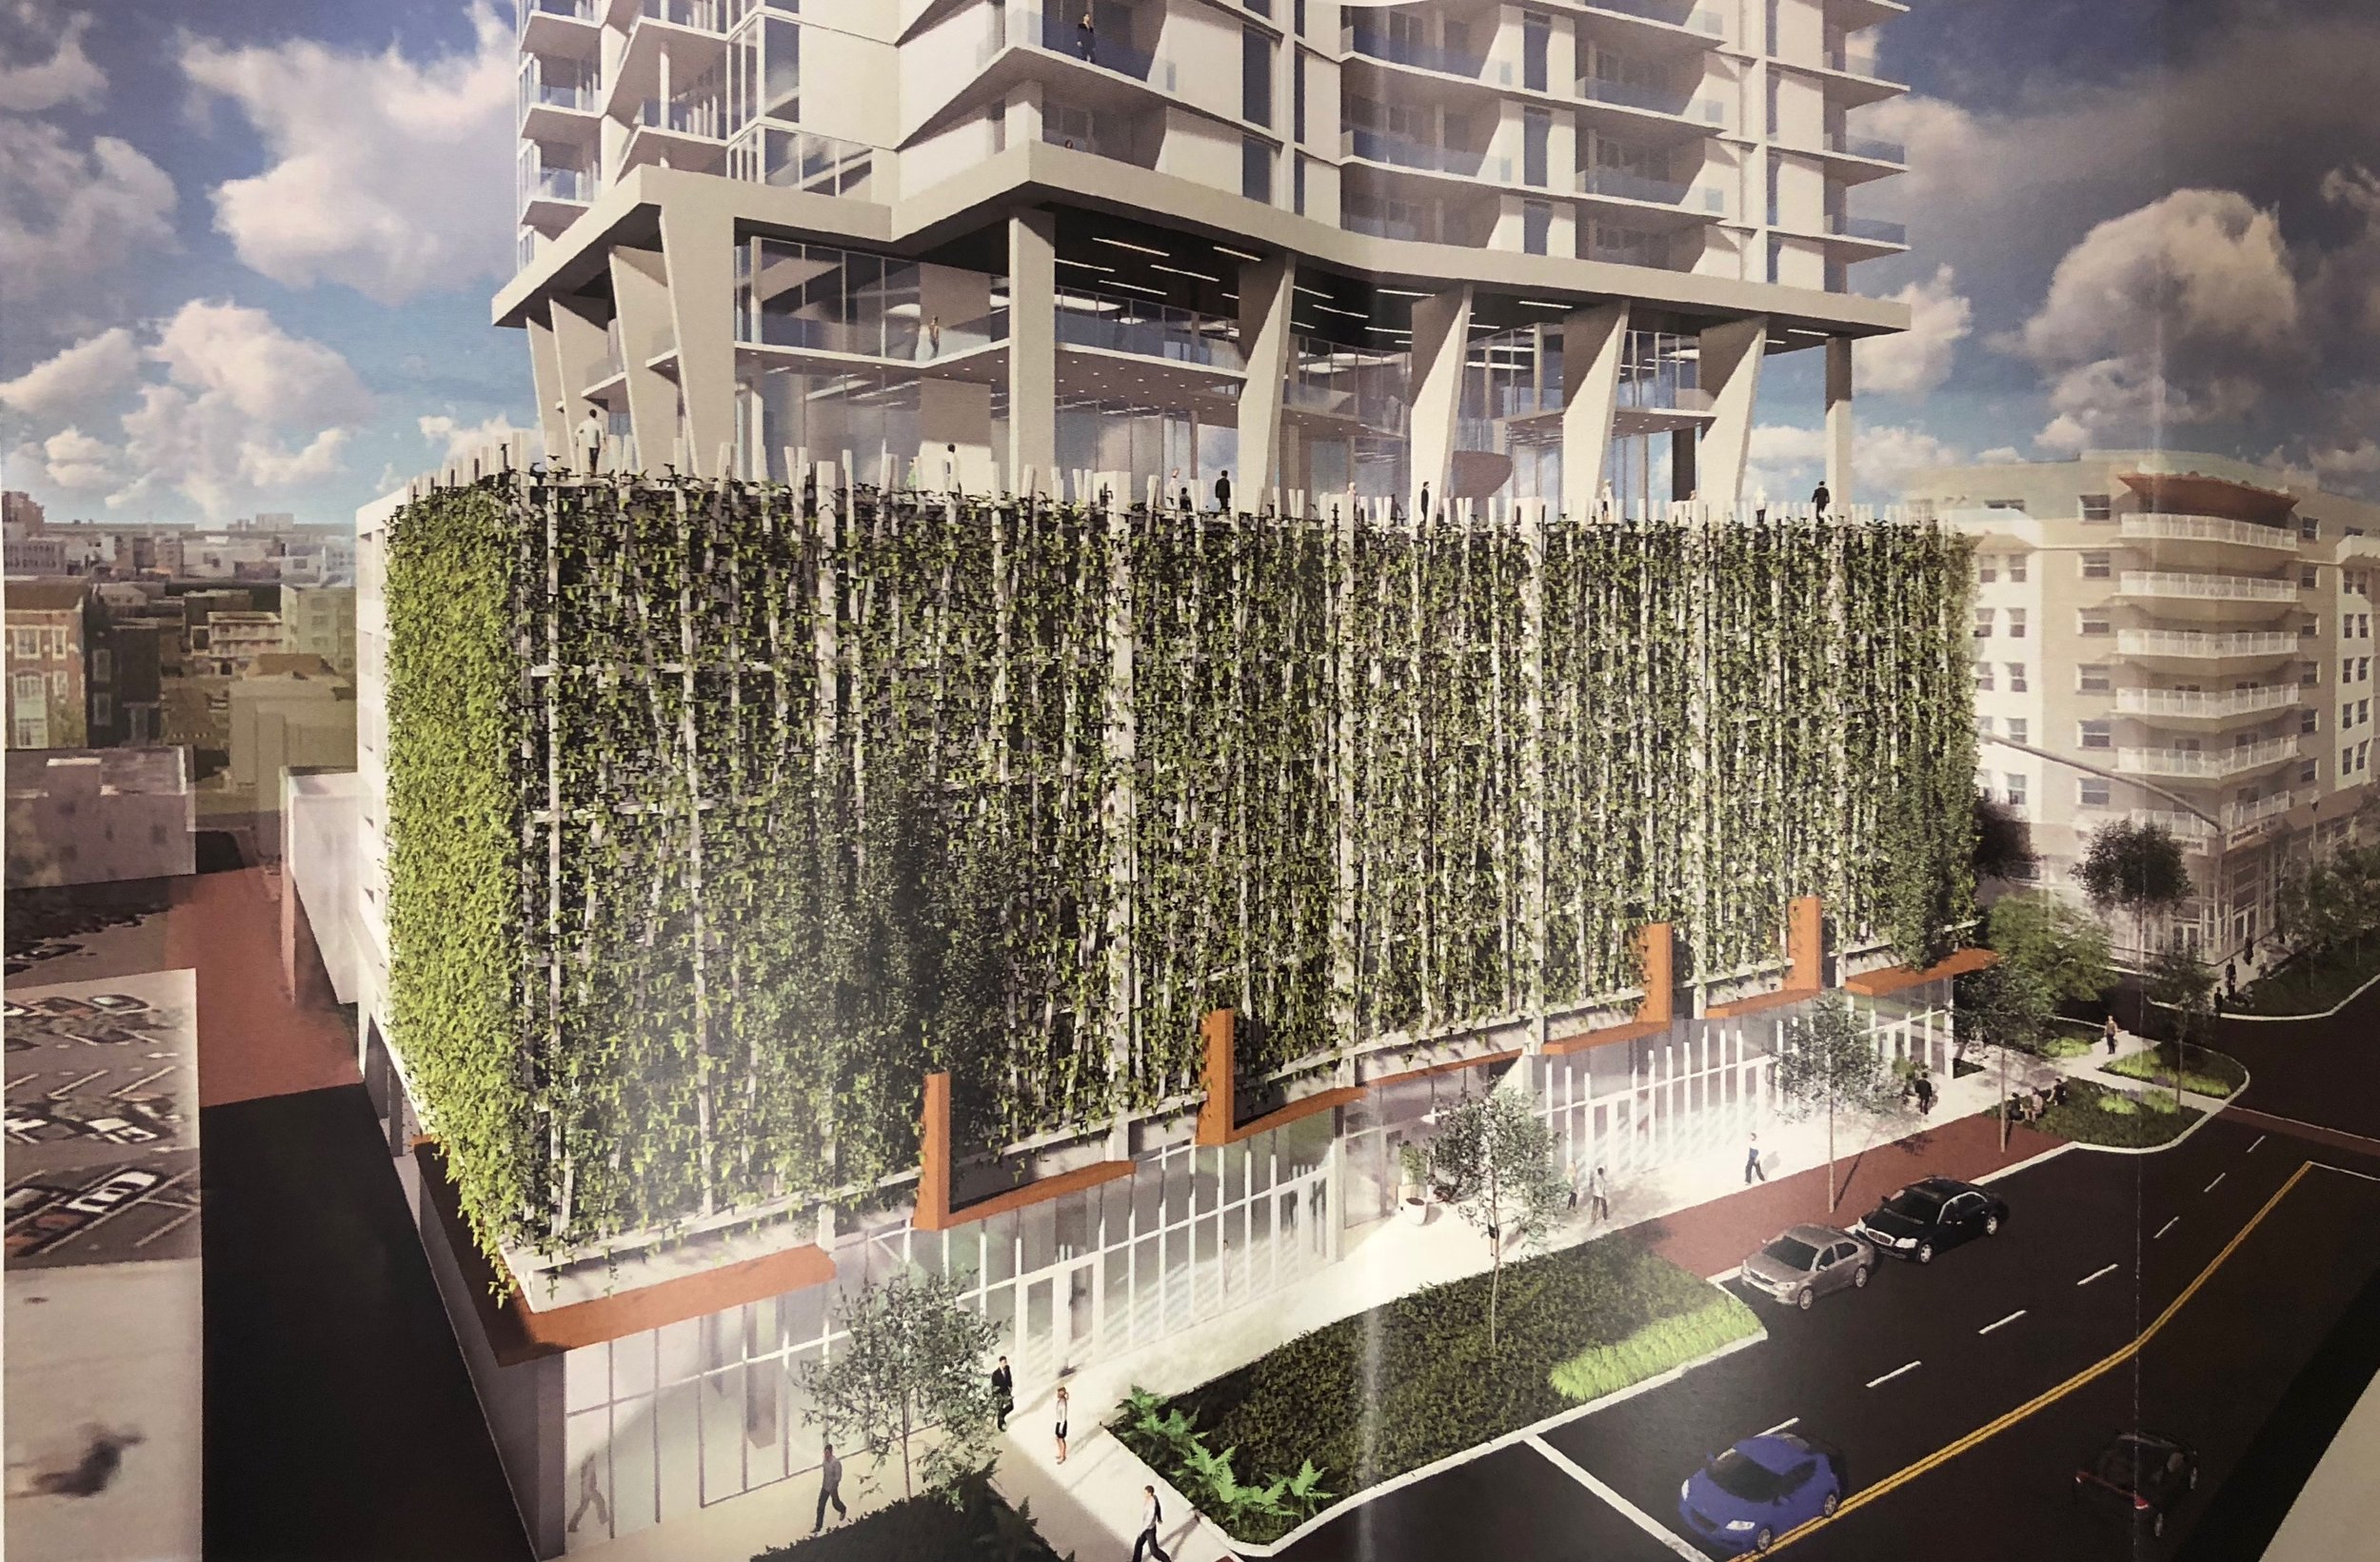 The project would contain 218 parking spaces in a garage that would be hidden from view behind aluminum screens with vertical vegetation such as vines or other greenery.